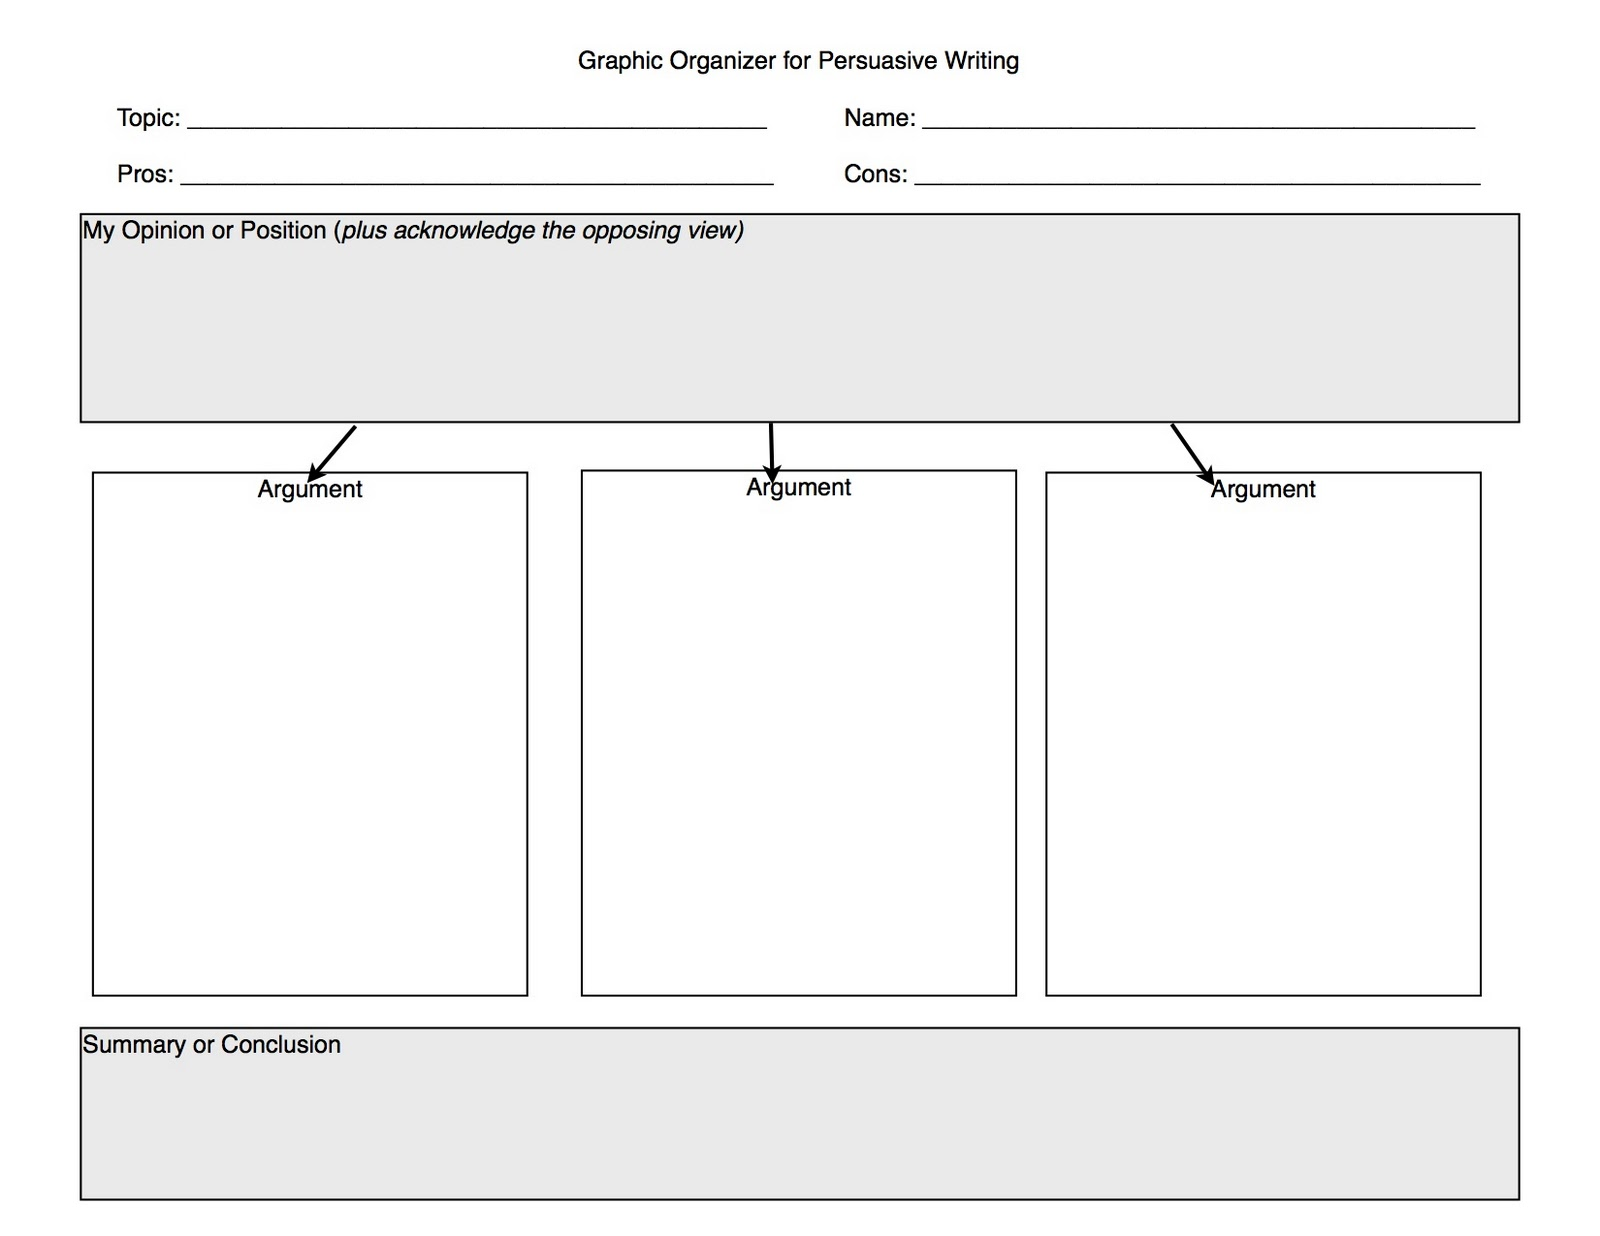 read write think persuasion map with Writing Graphic Organizer on La as well CmVhZHdyaXRldGhpbmstZXNzYXktbWFw as well Outline Of A Person Template together with Essay further Readwritethink Essay Map.